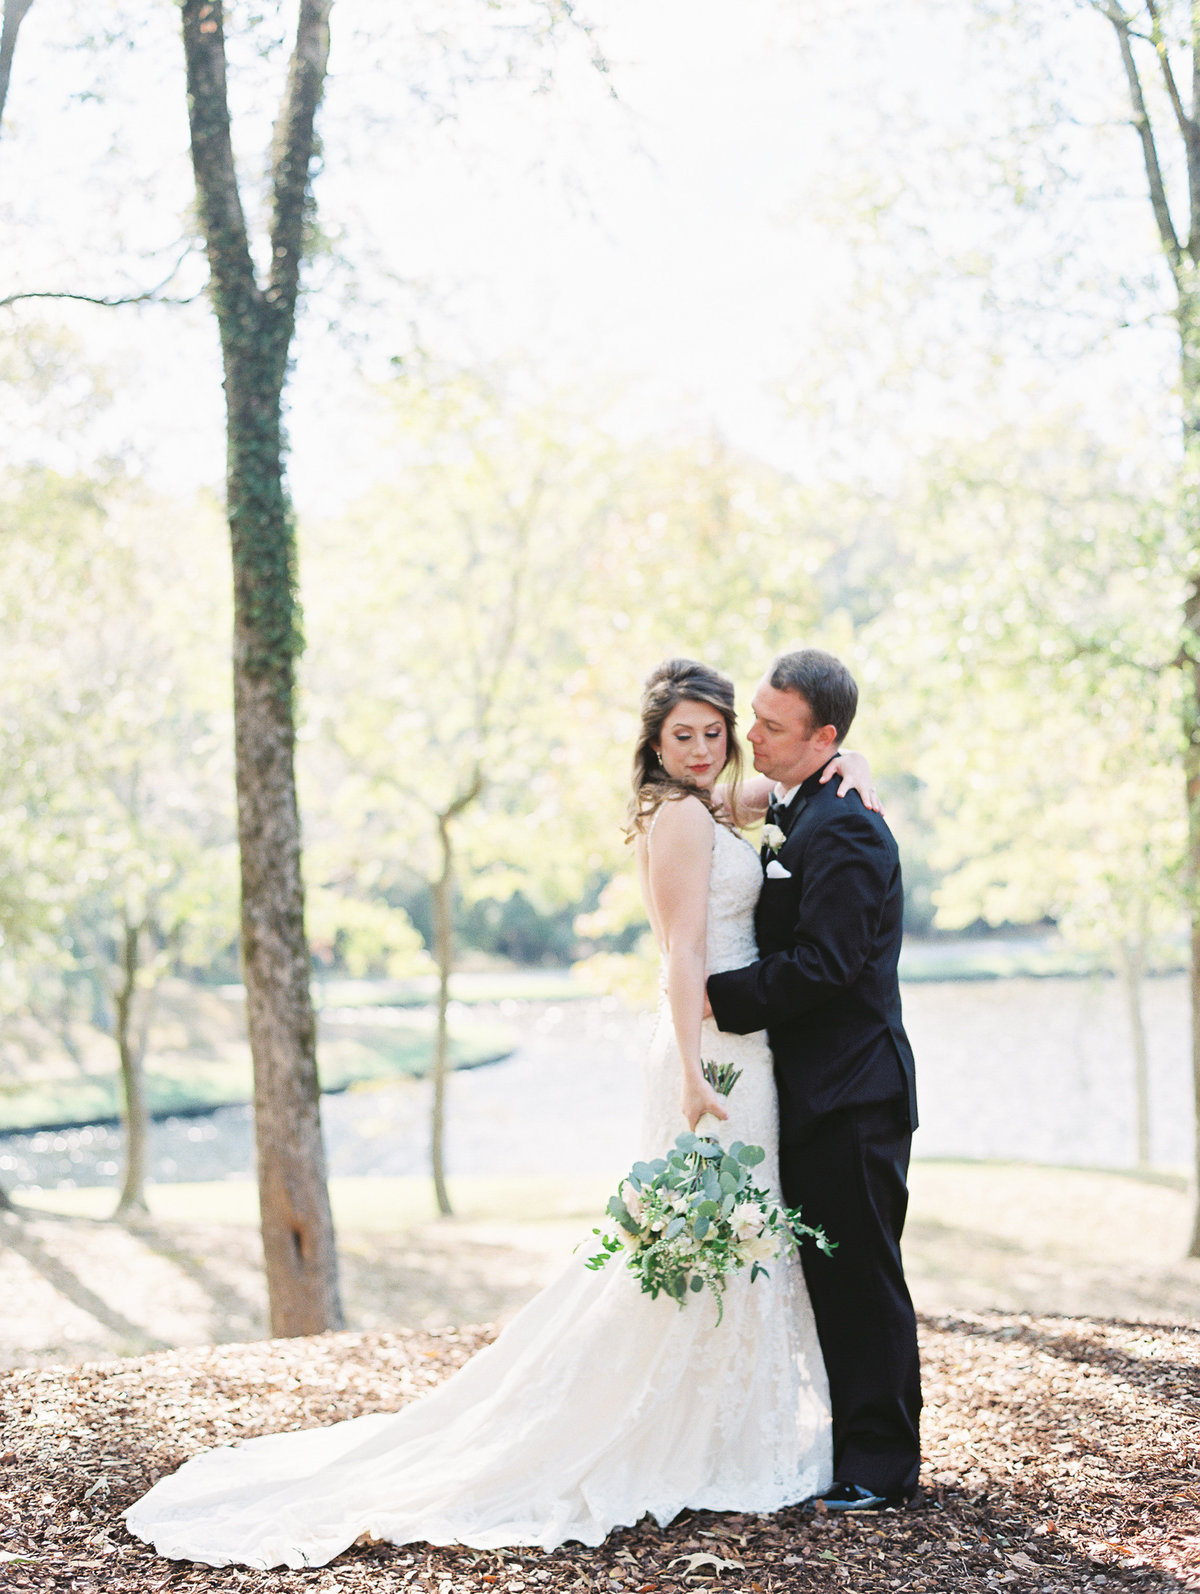 691_Anne & Ryan Wedding_Lindsay Vallas Photog